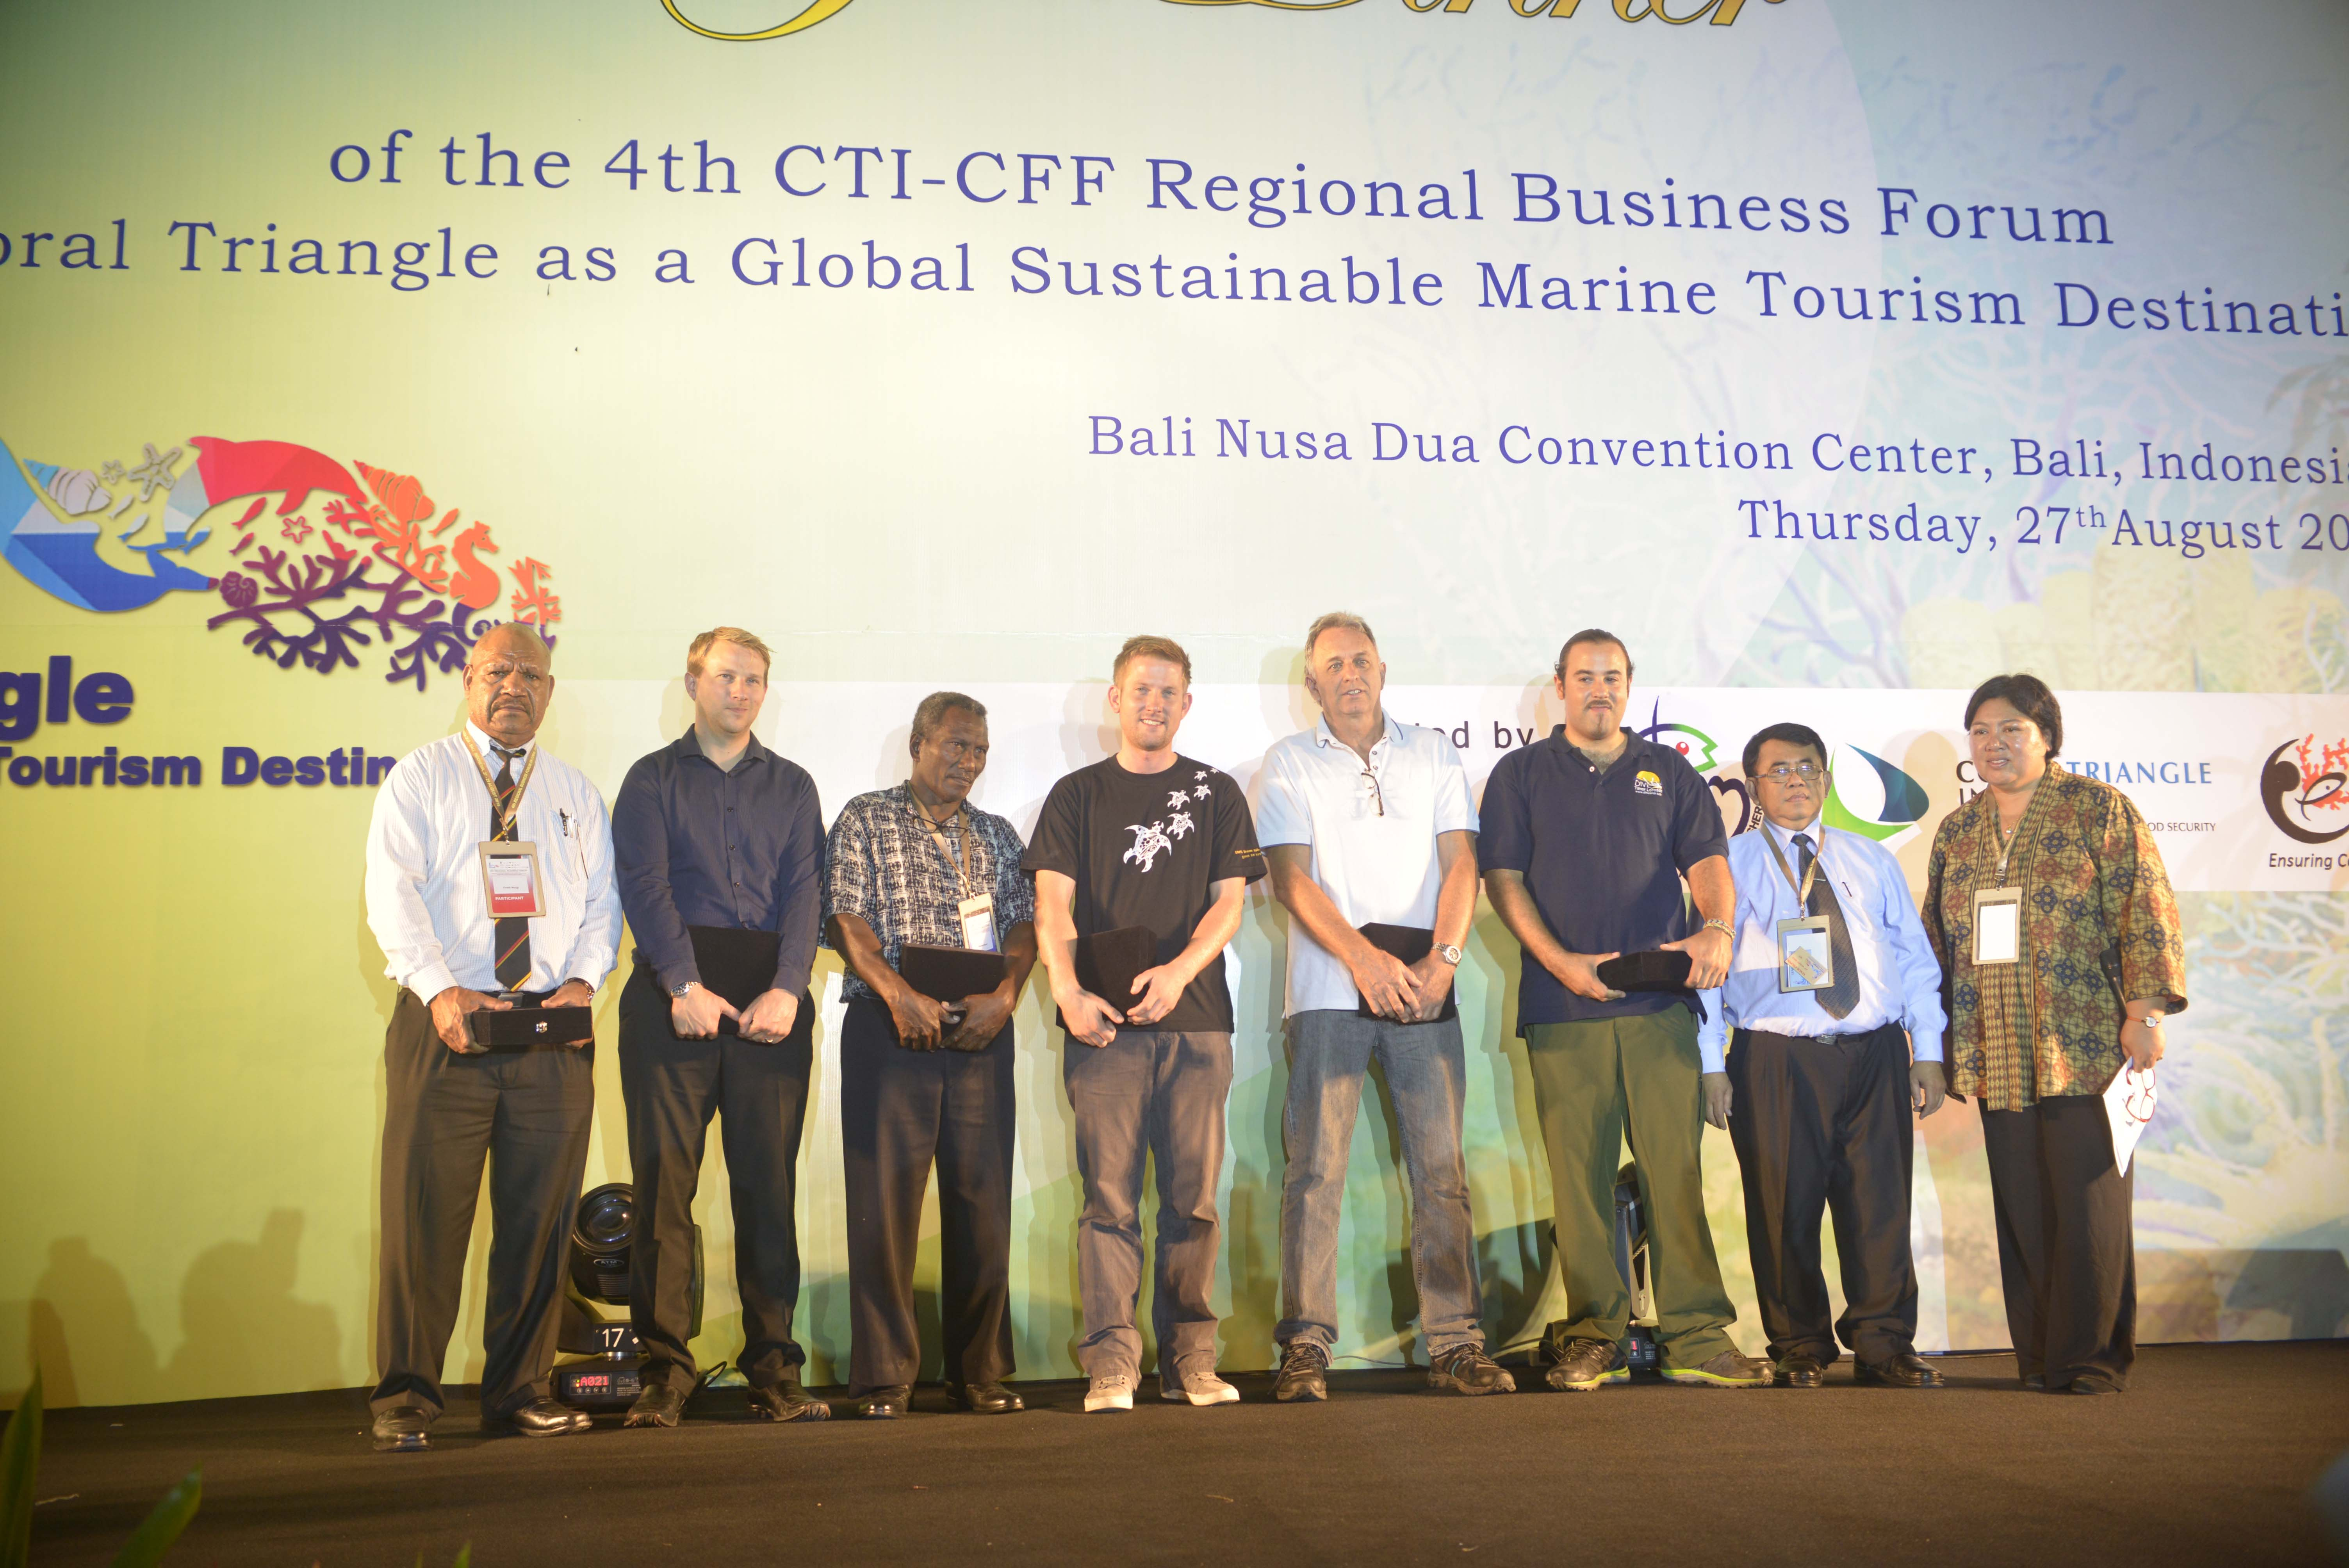 Six Entrepreneurs Recognized for Promoting Sustainable Marine Tourism in the Coral Triangle